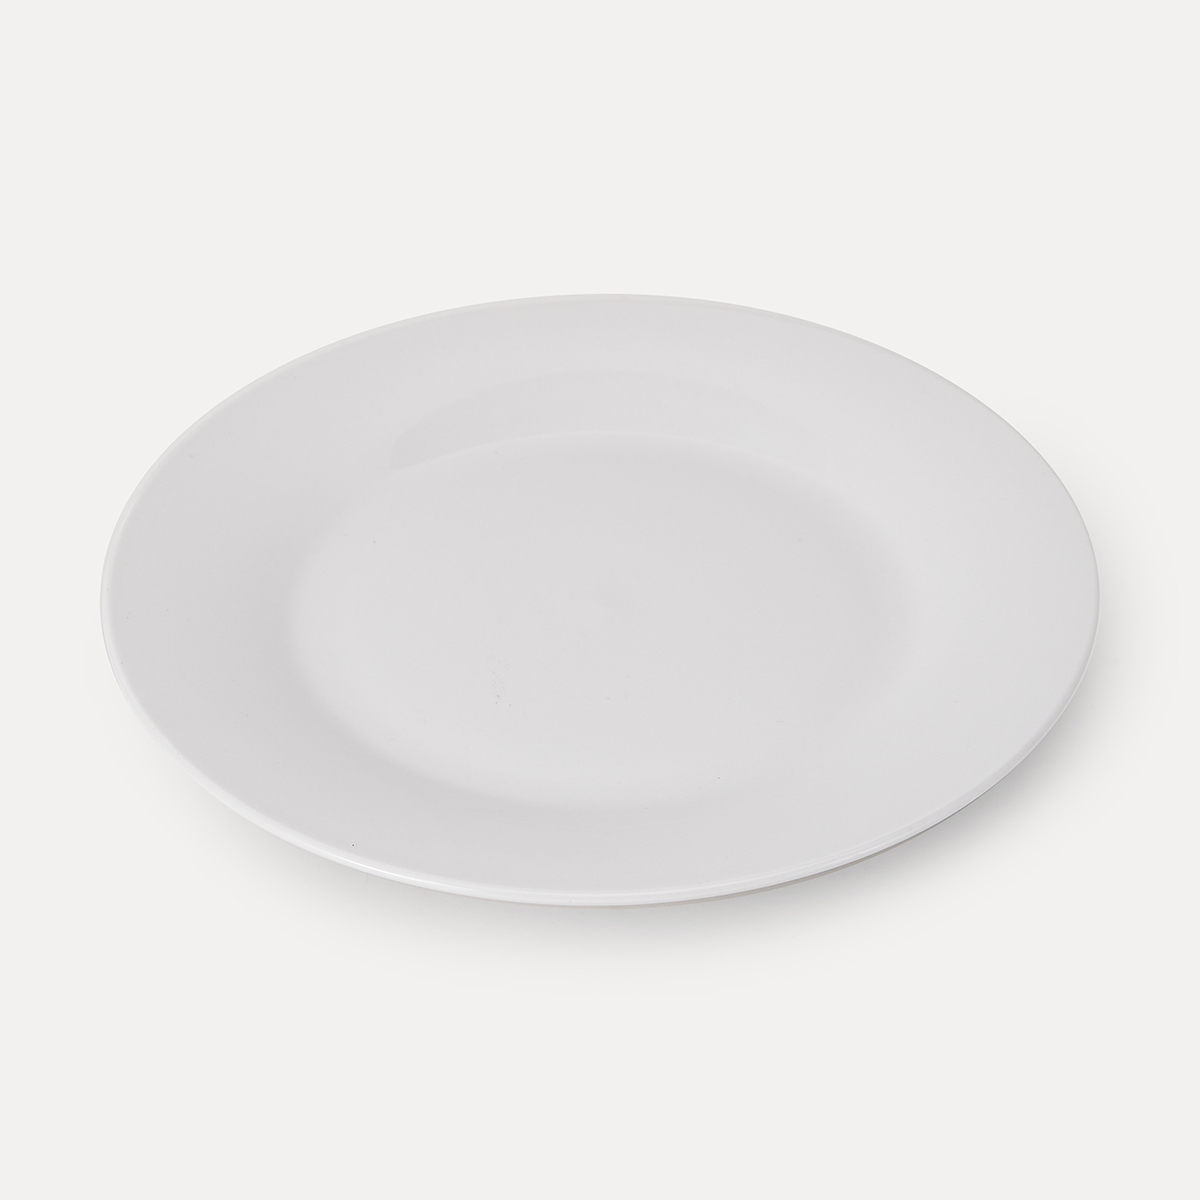 White Dinner Plate. + / - Hover over image to Zoom  sc 1 st  Kmart & White Dinner Plate | Kmart